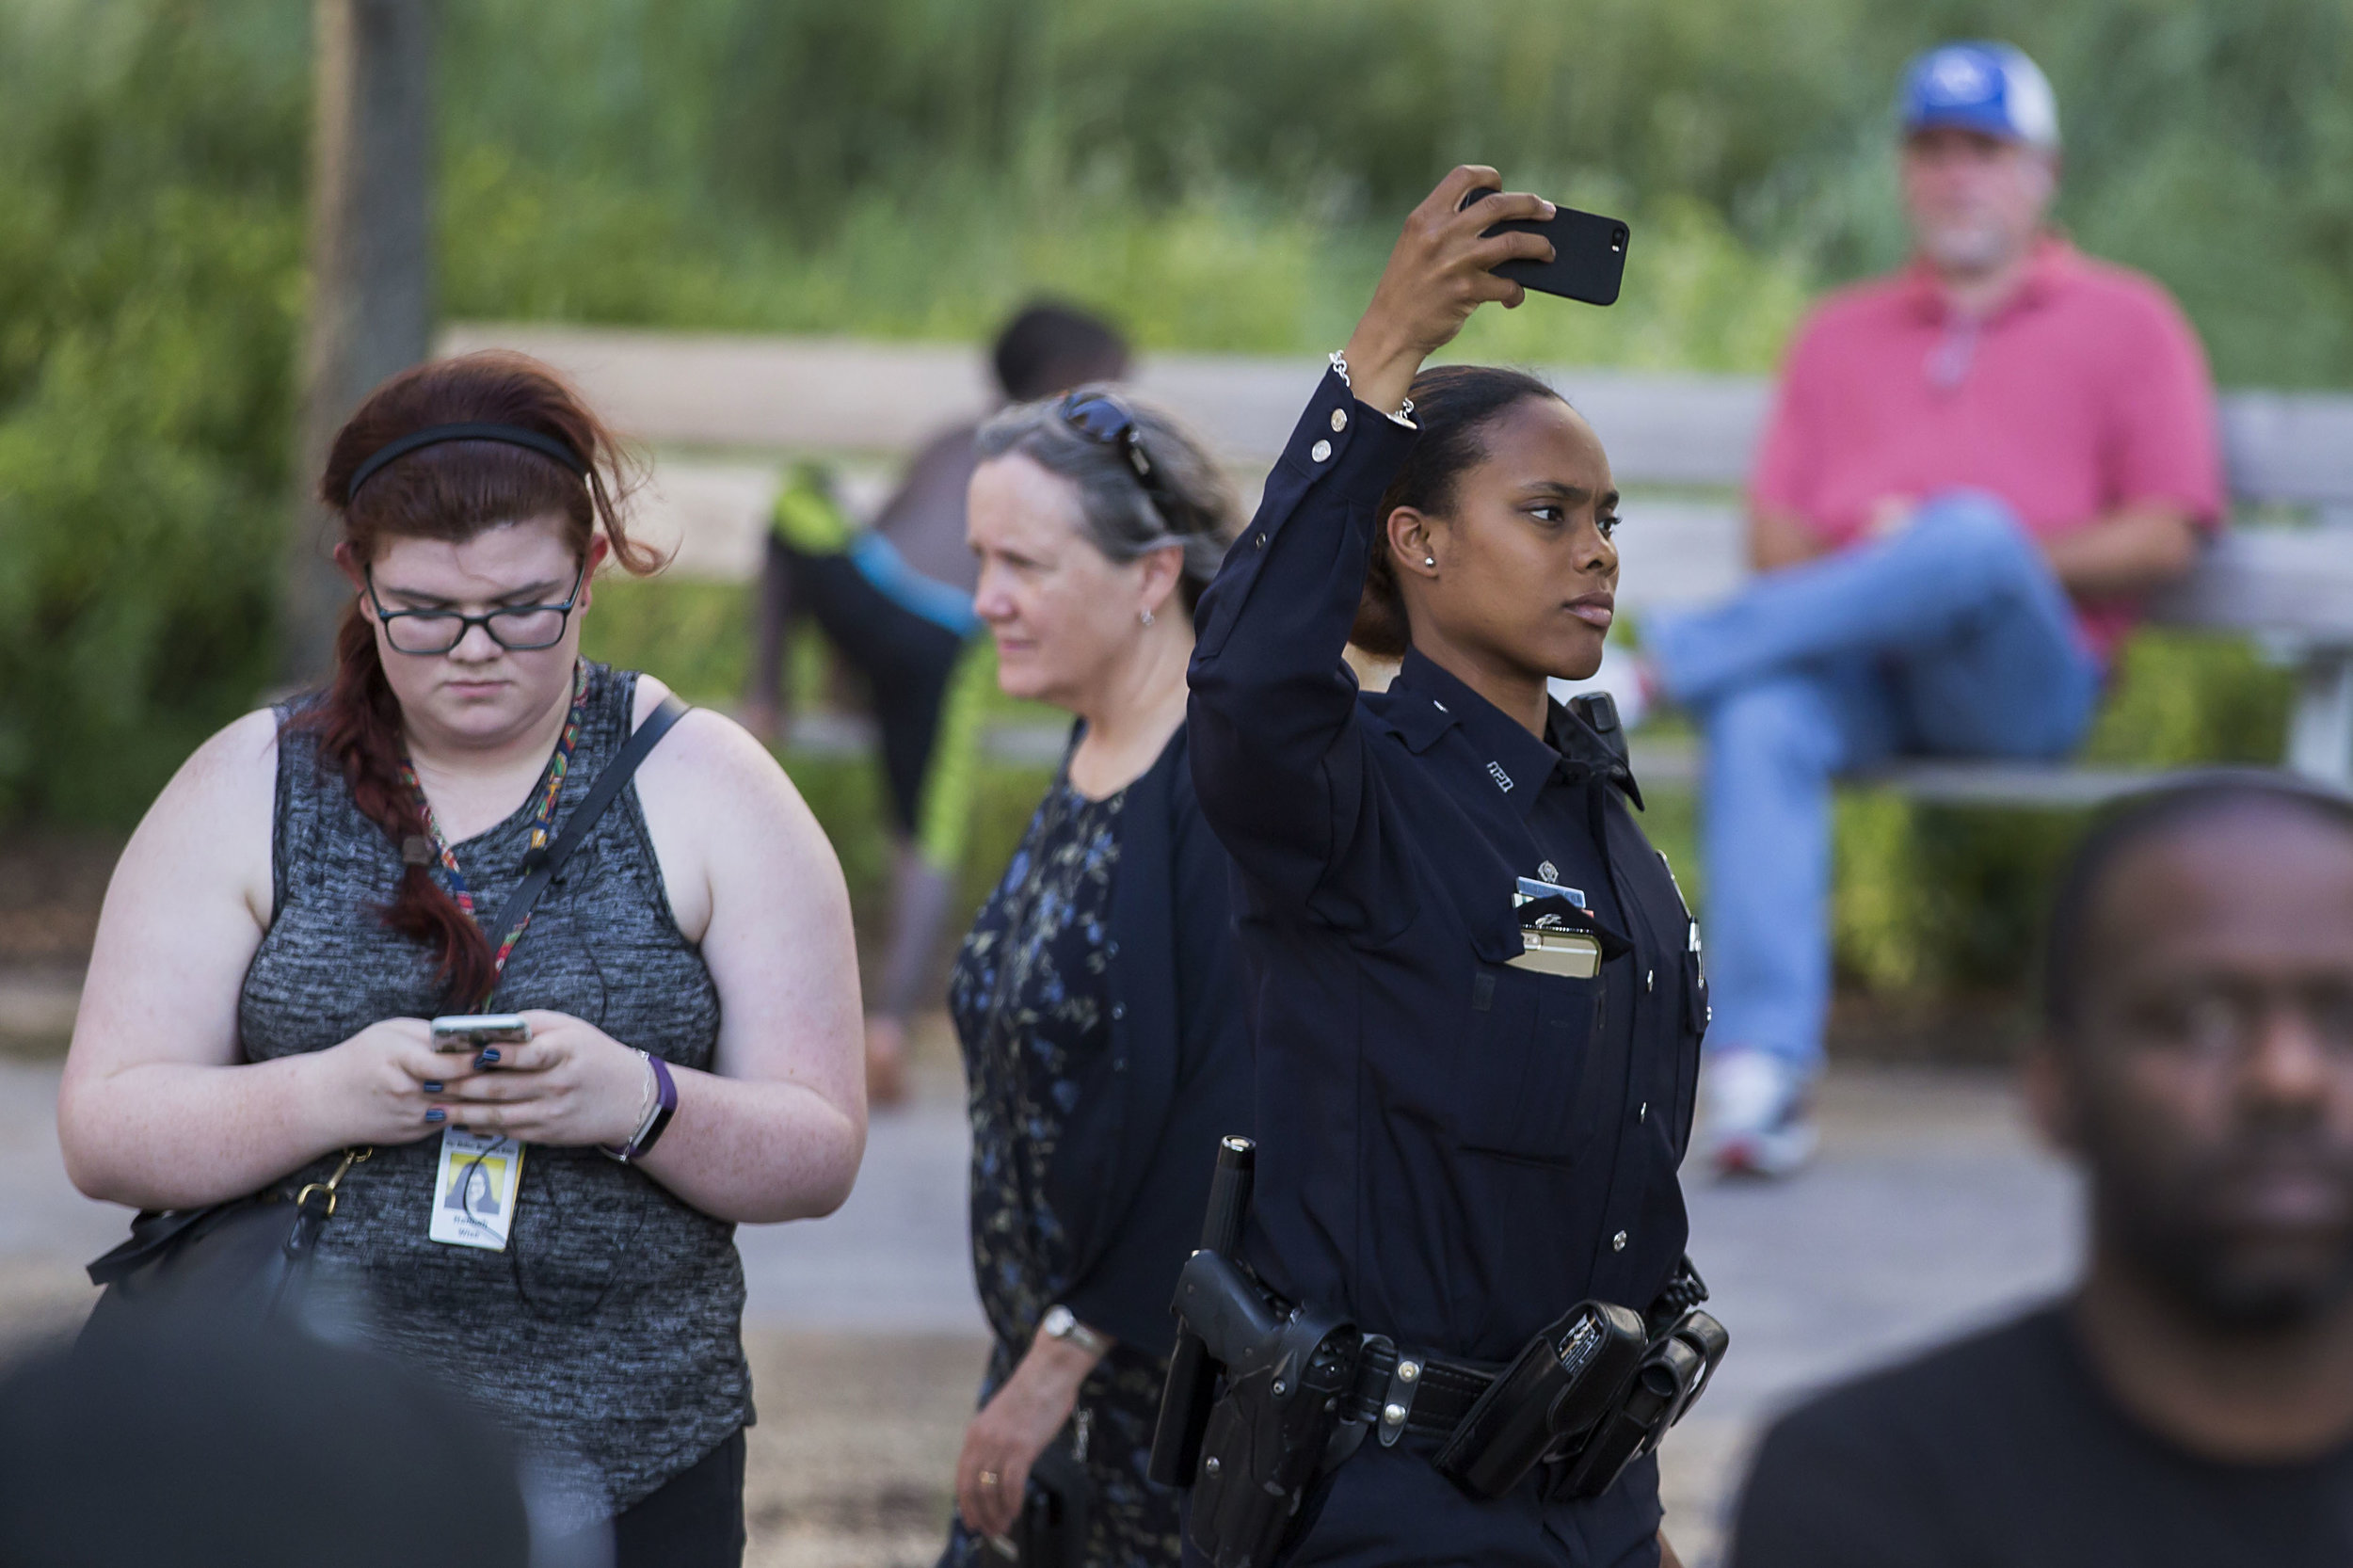 Preparing to go live on The Dallas Morning News' Facebook before the protest that became the July 7, 2016 ambush on Dallas police. (Smiley N. Pool/The Dallas Morning News)